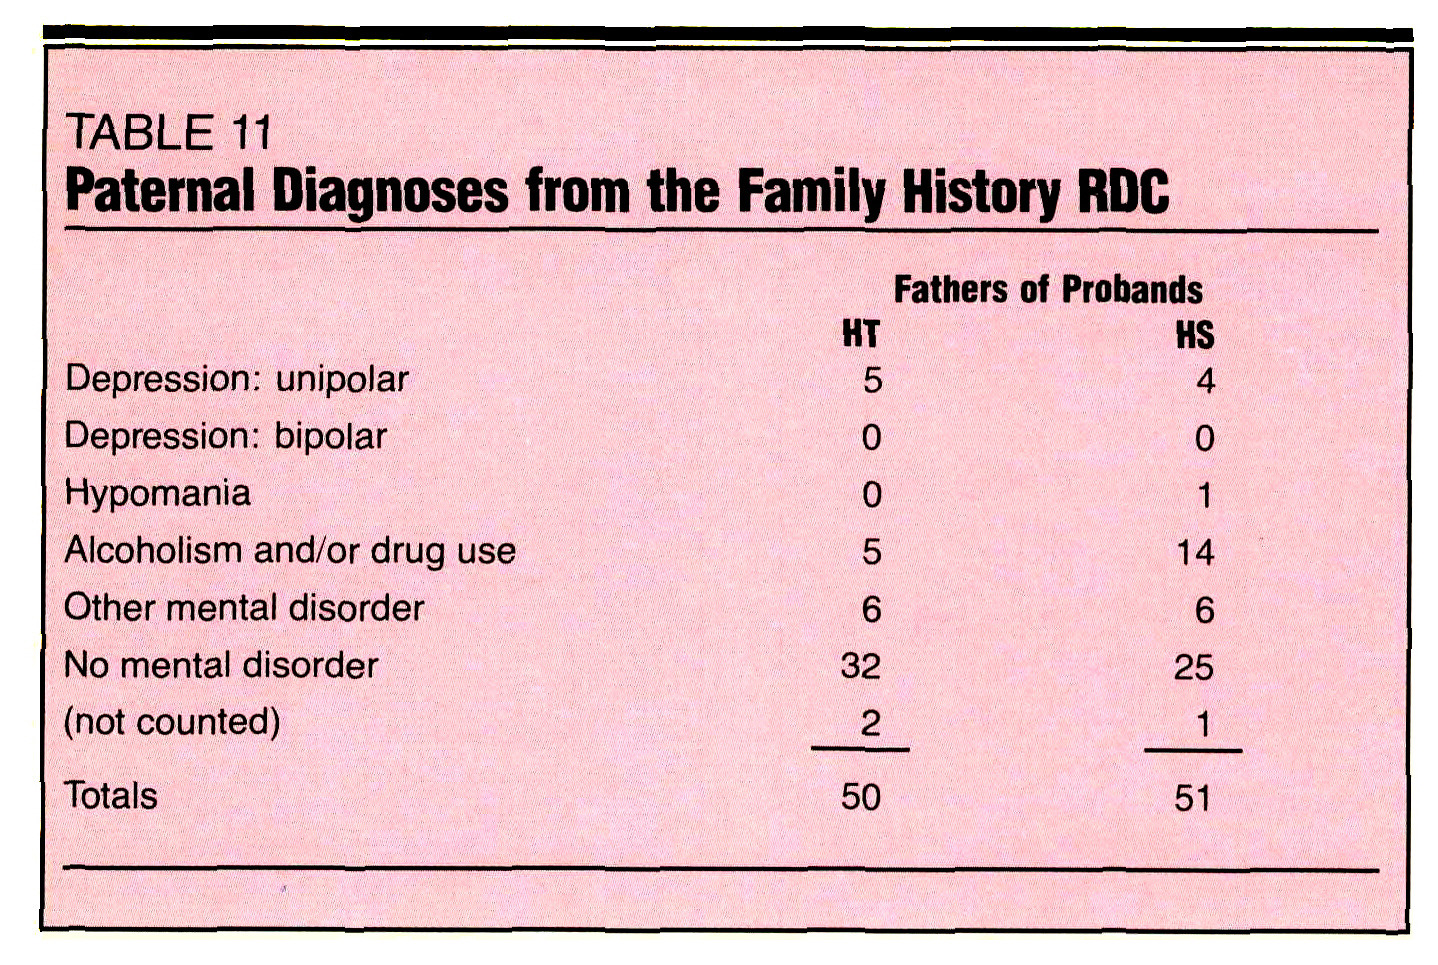 TABLE 11Paternal Diagnoses from the Family History RDC